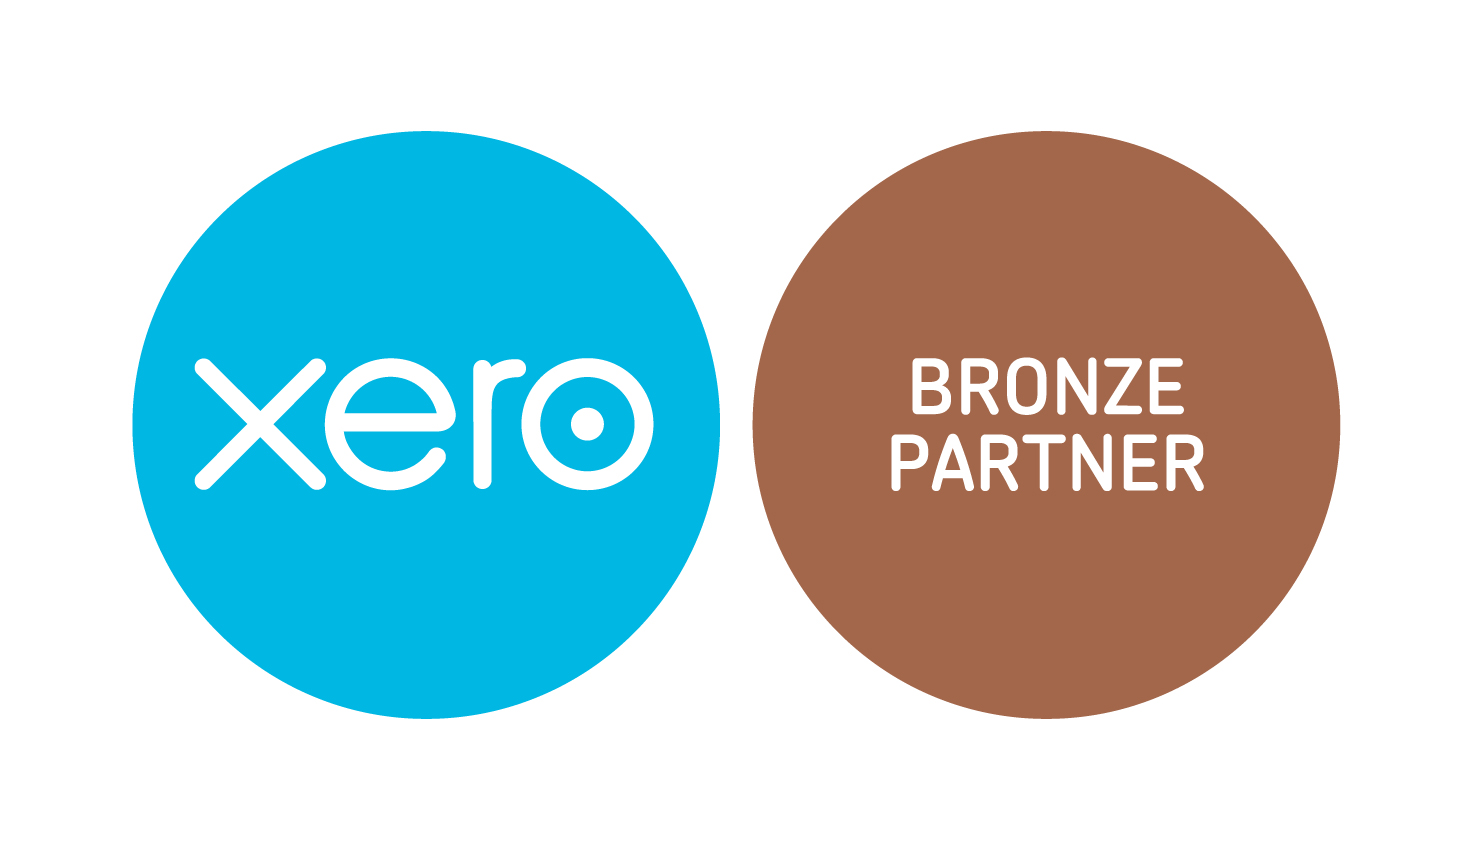 Tim Alter is a bronze xero partner